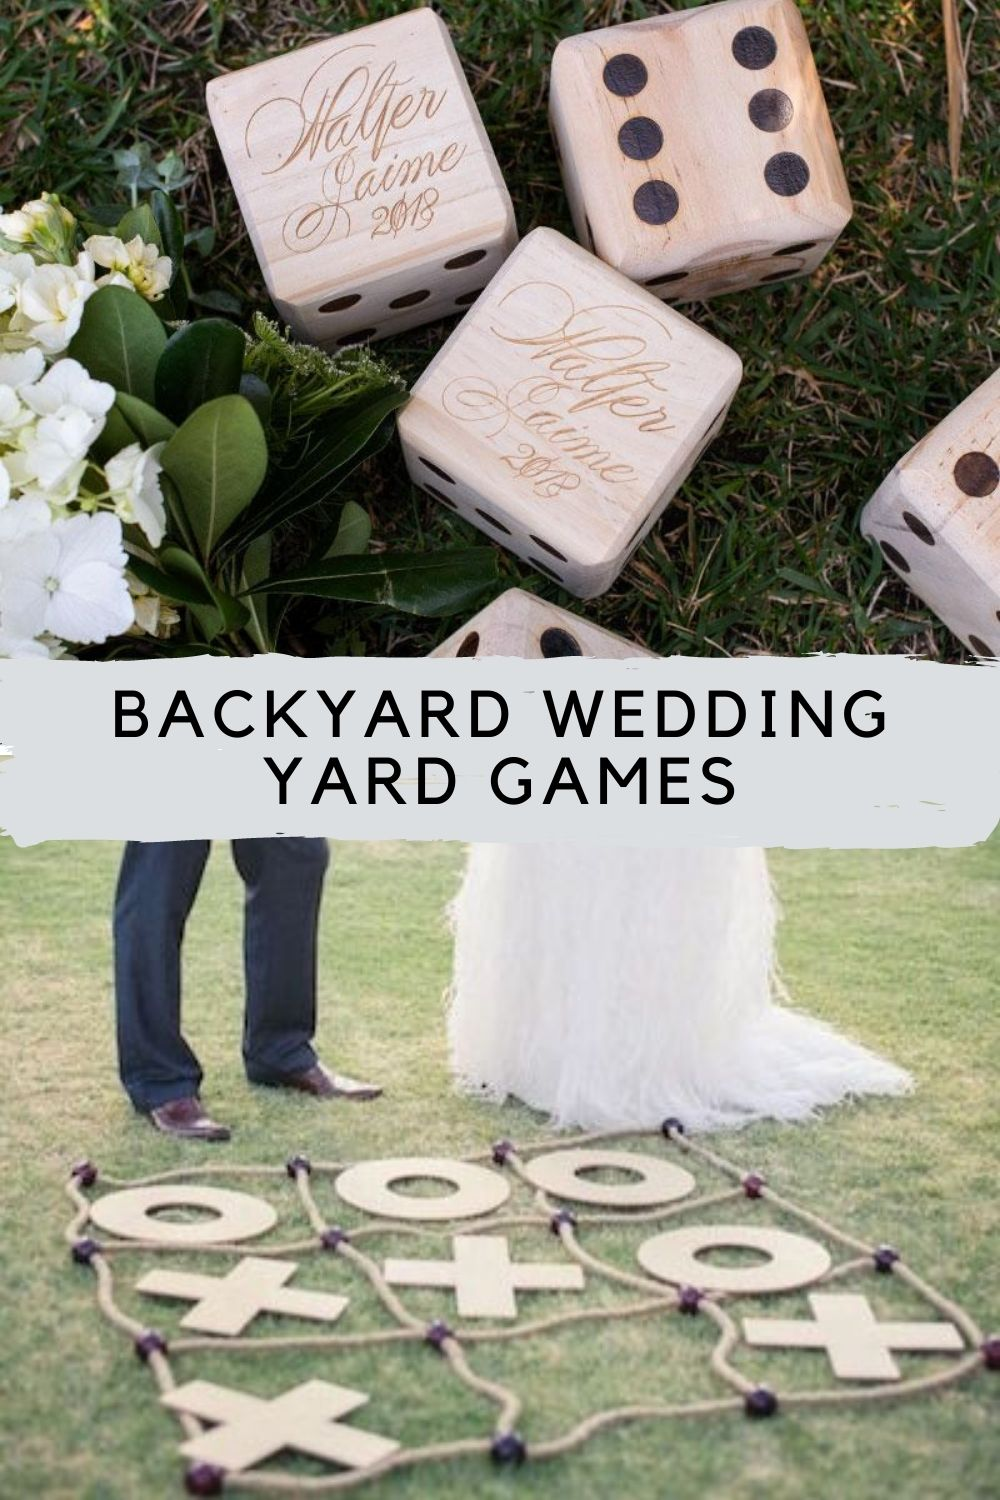 Backyard Games For Weddings With A Lawn